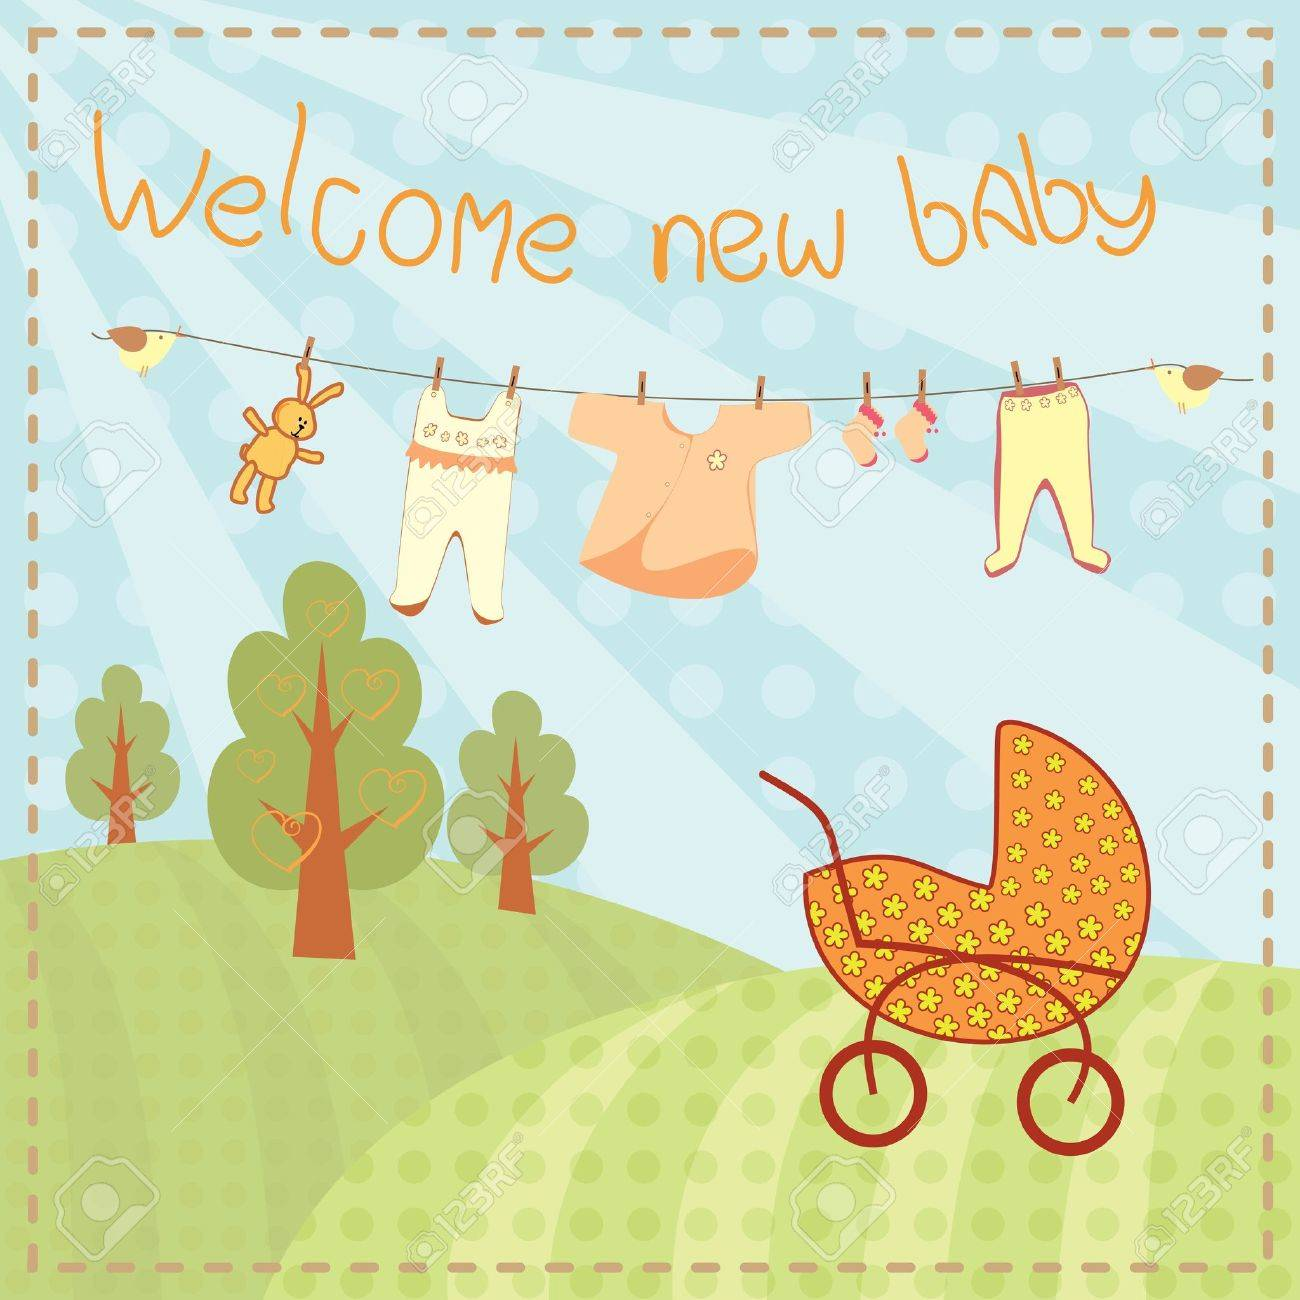 welcome new baby greeting card royalty free cliparts vectors and